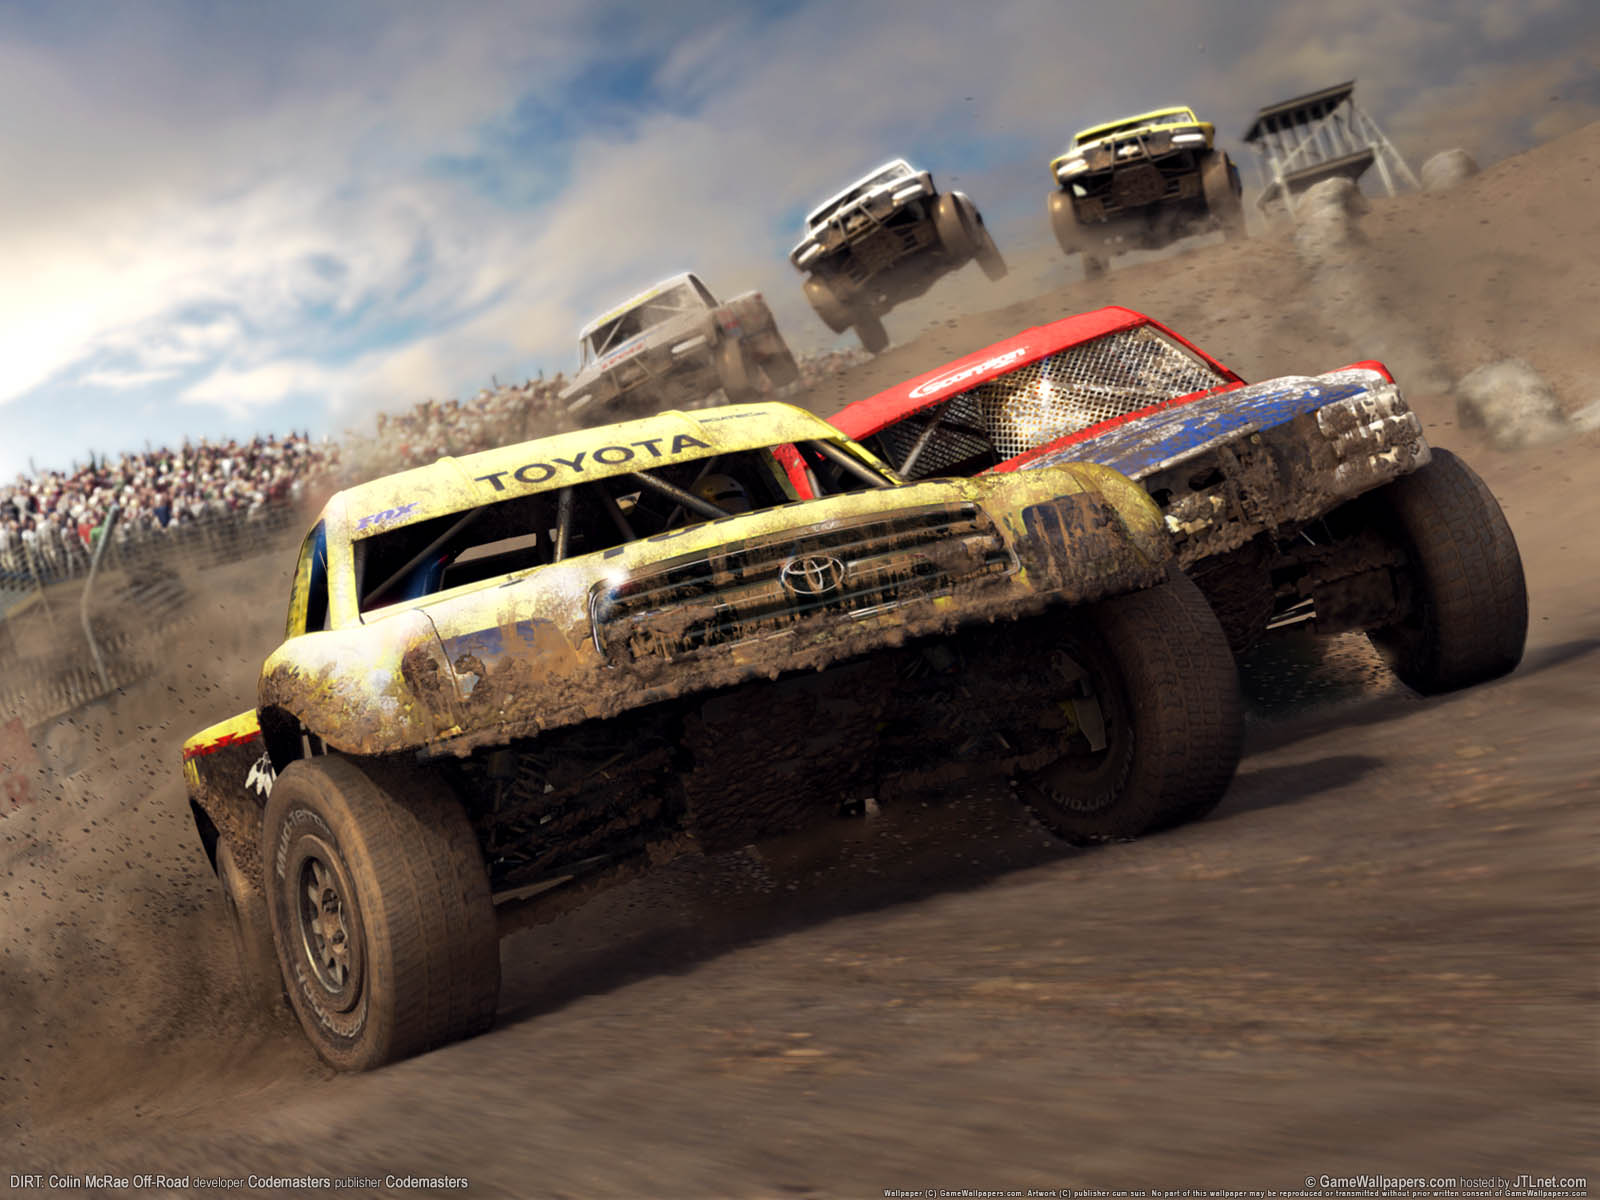 DIRT: Colin McRae Off-Roadνmmer=02 Hintergrundbild  1600x1200